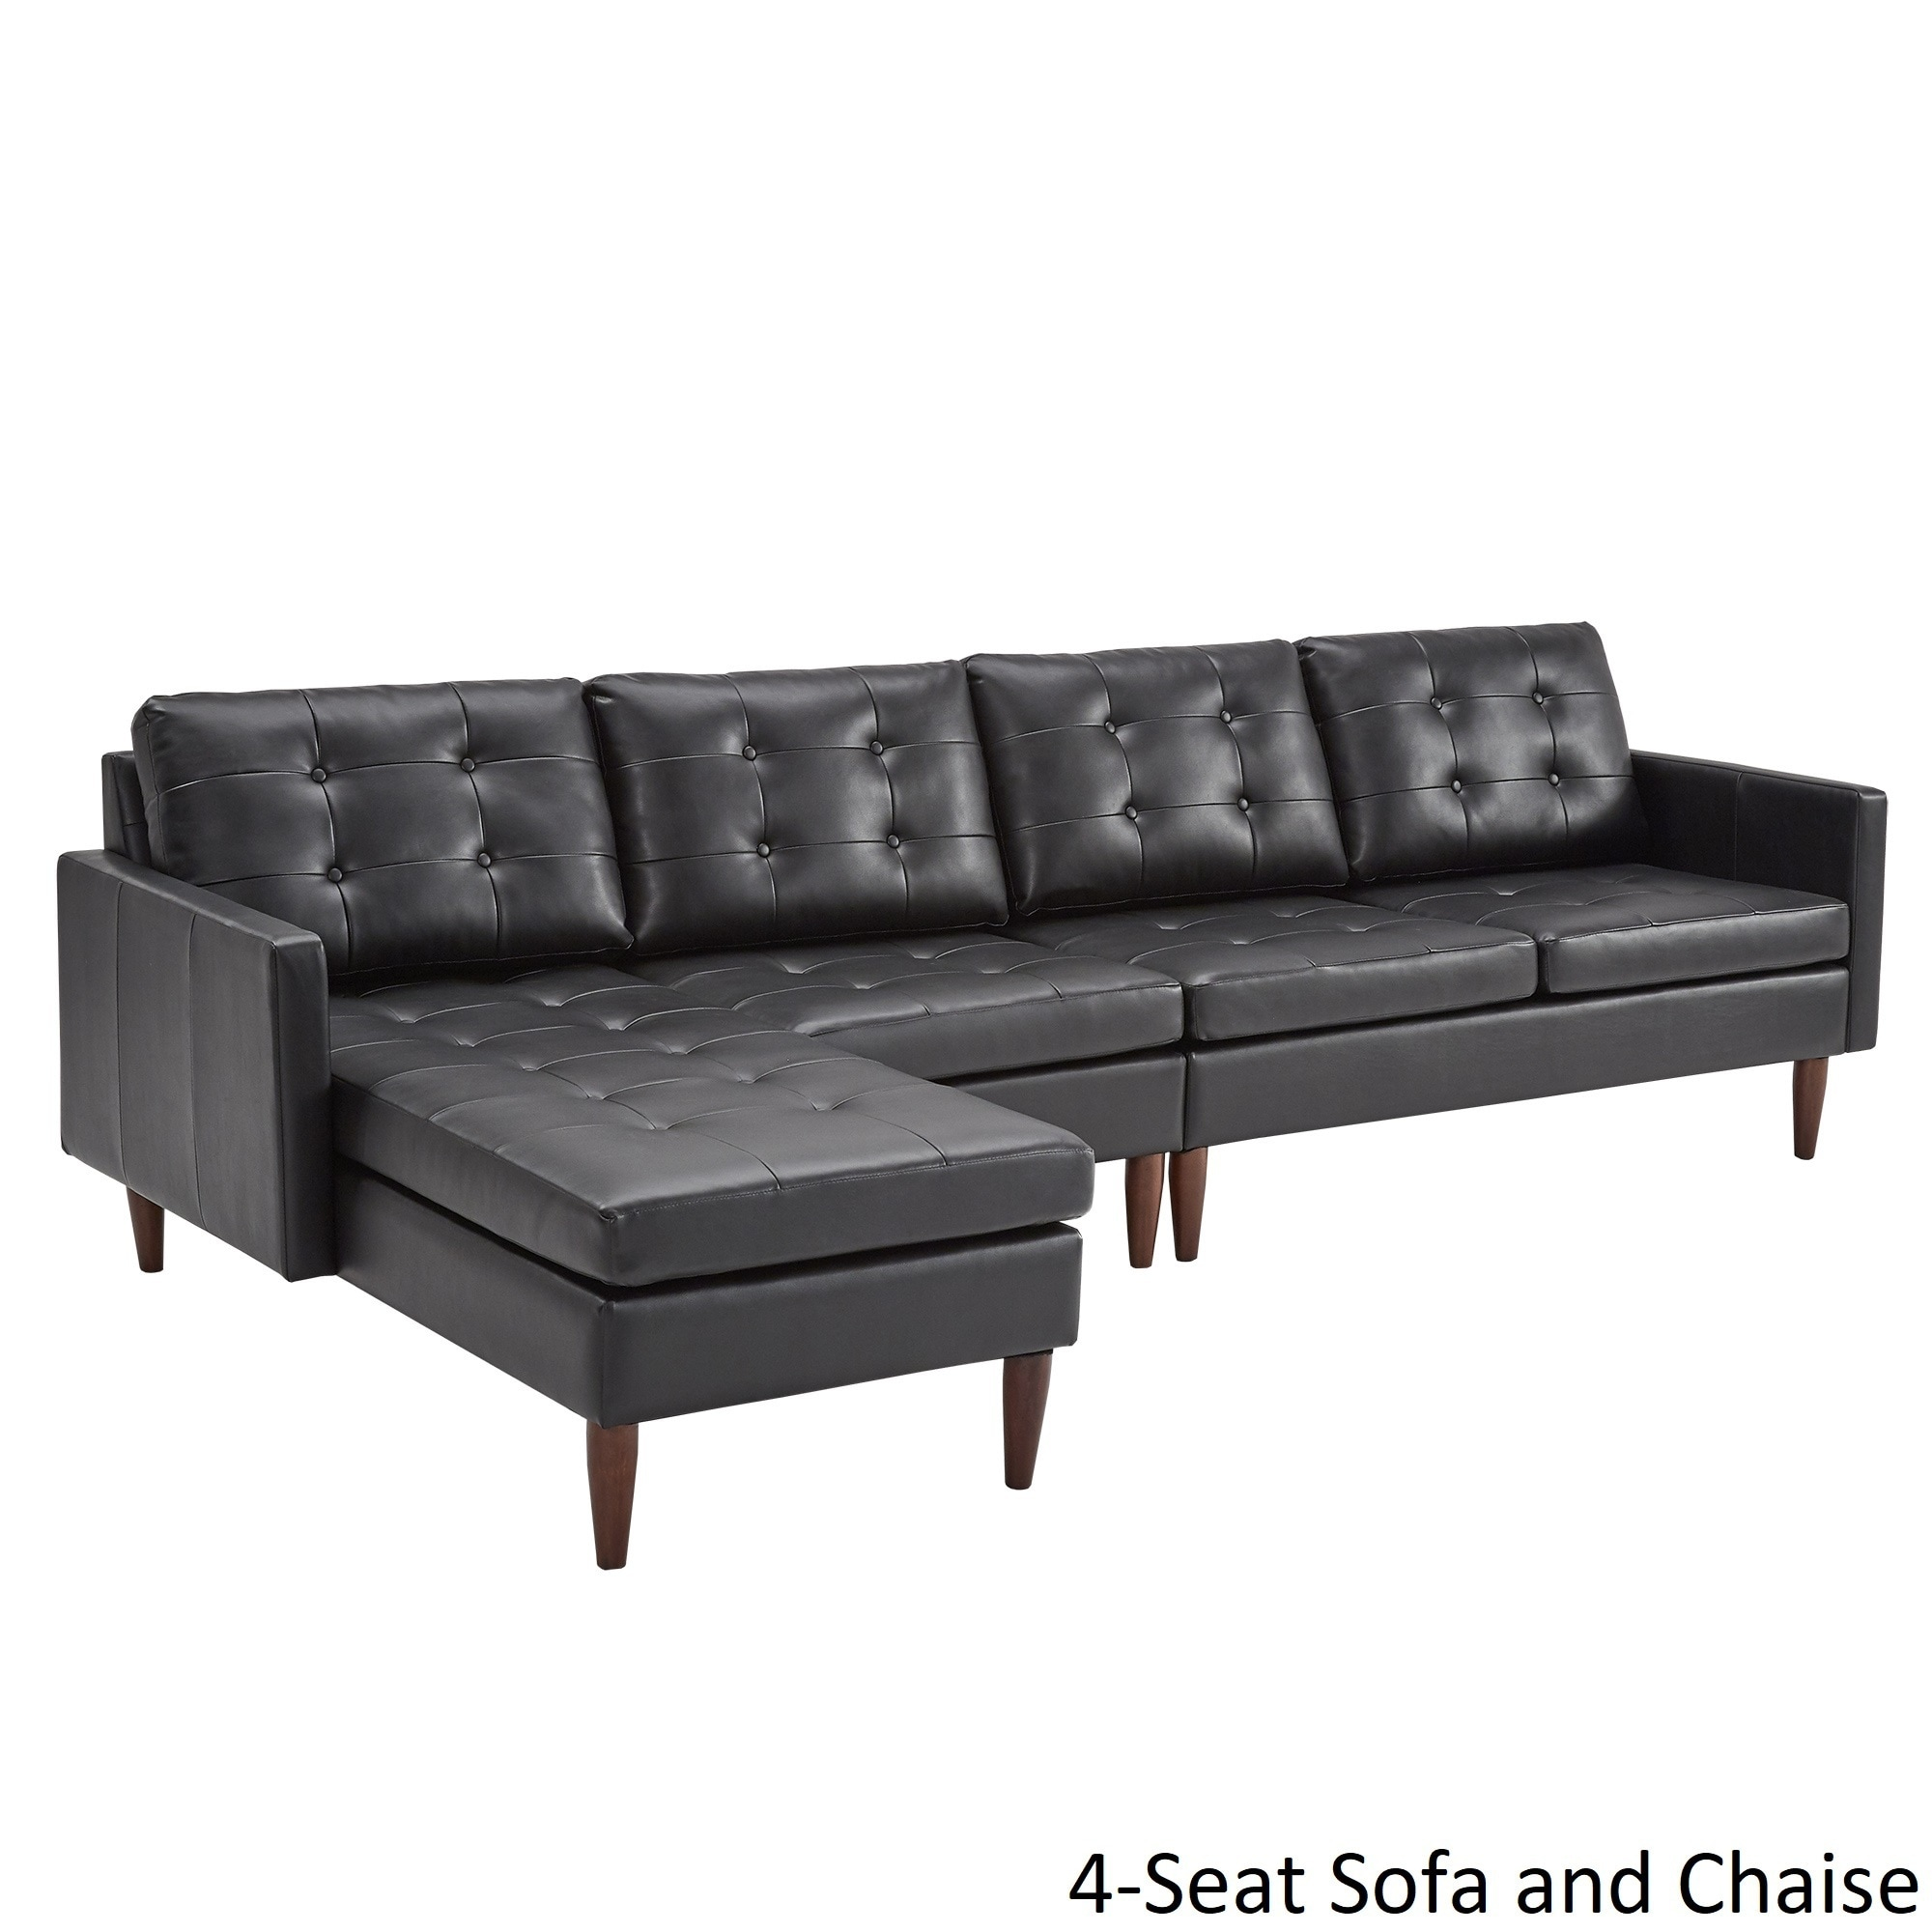 Shop Shawna Black Button Tufted Leather Gel Sofa Sectional With Chaise By  INSPIRE Q Modern   On Sale   Free Shipping Today   Overstock.com   19893676